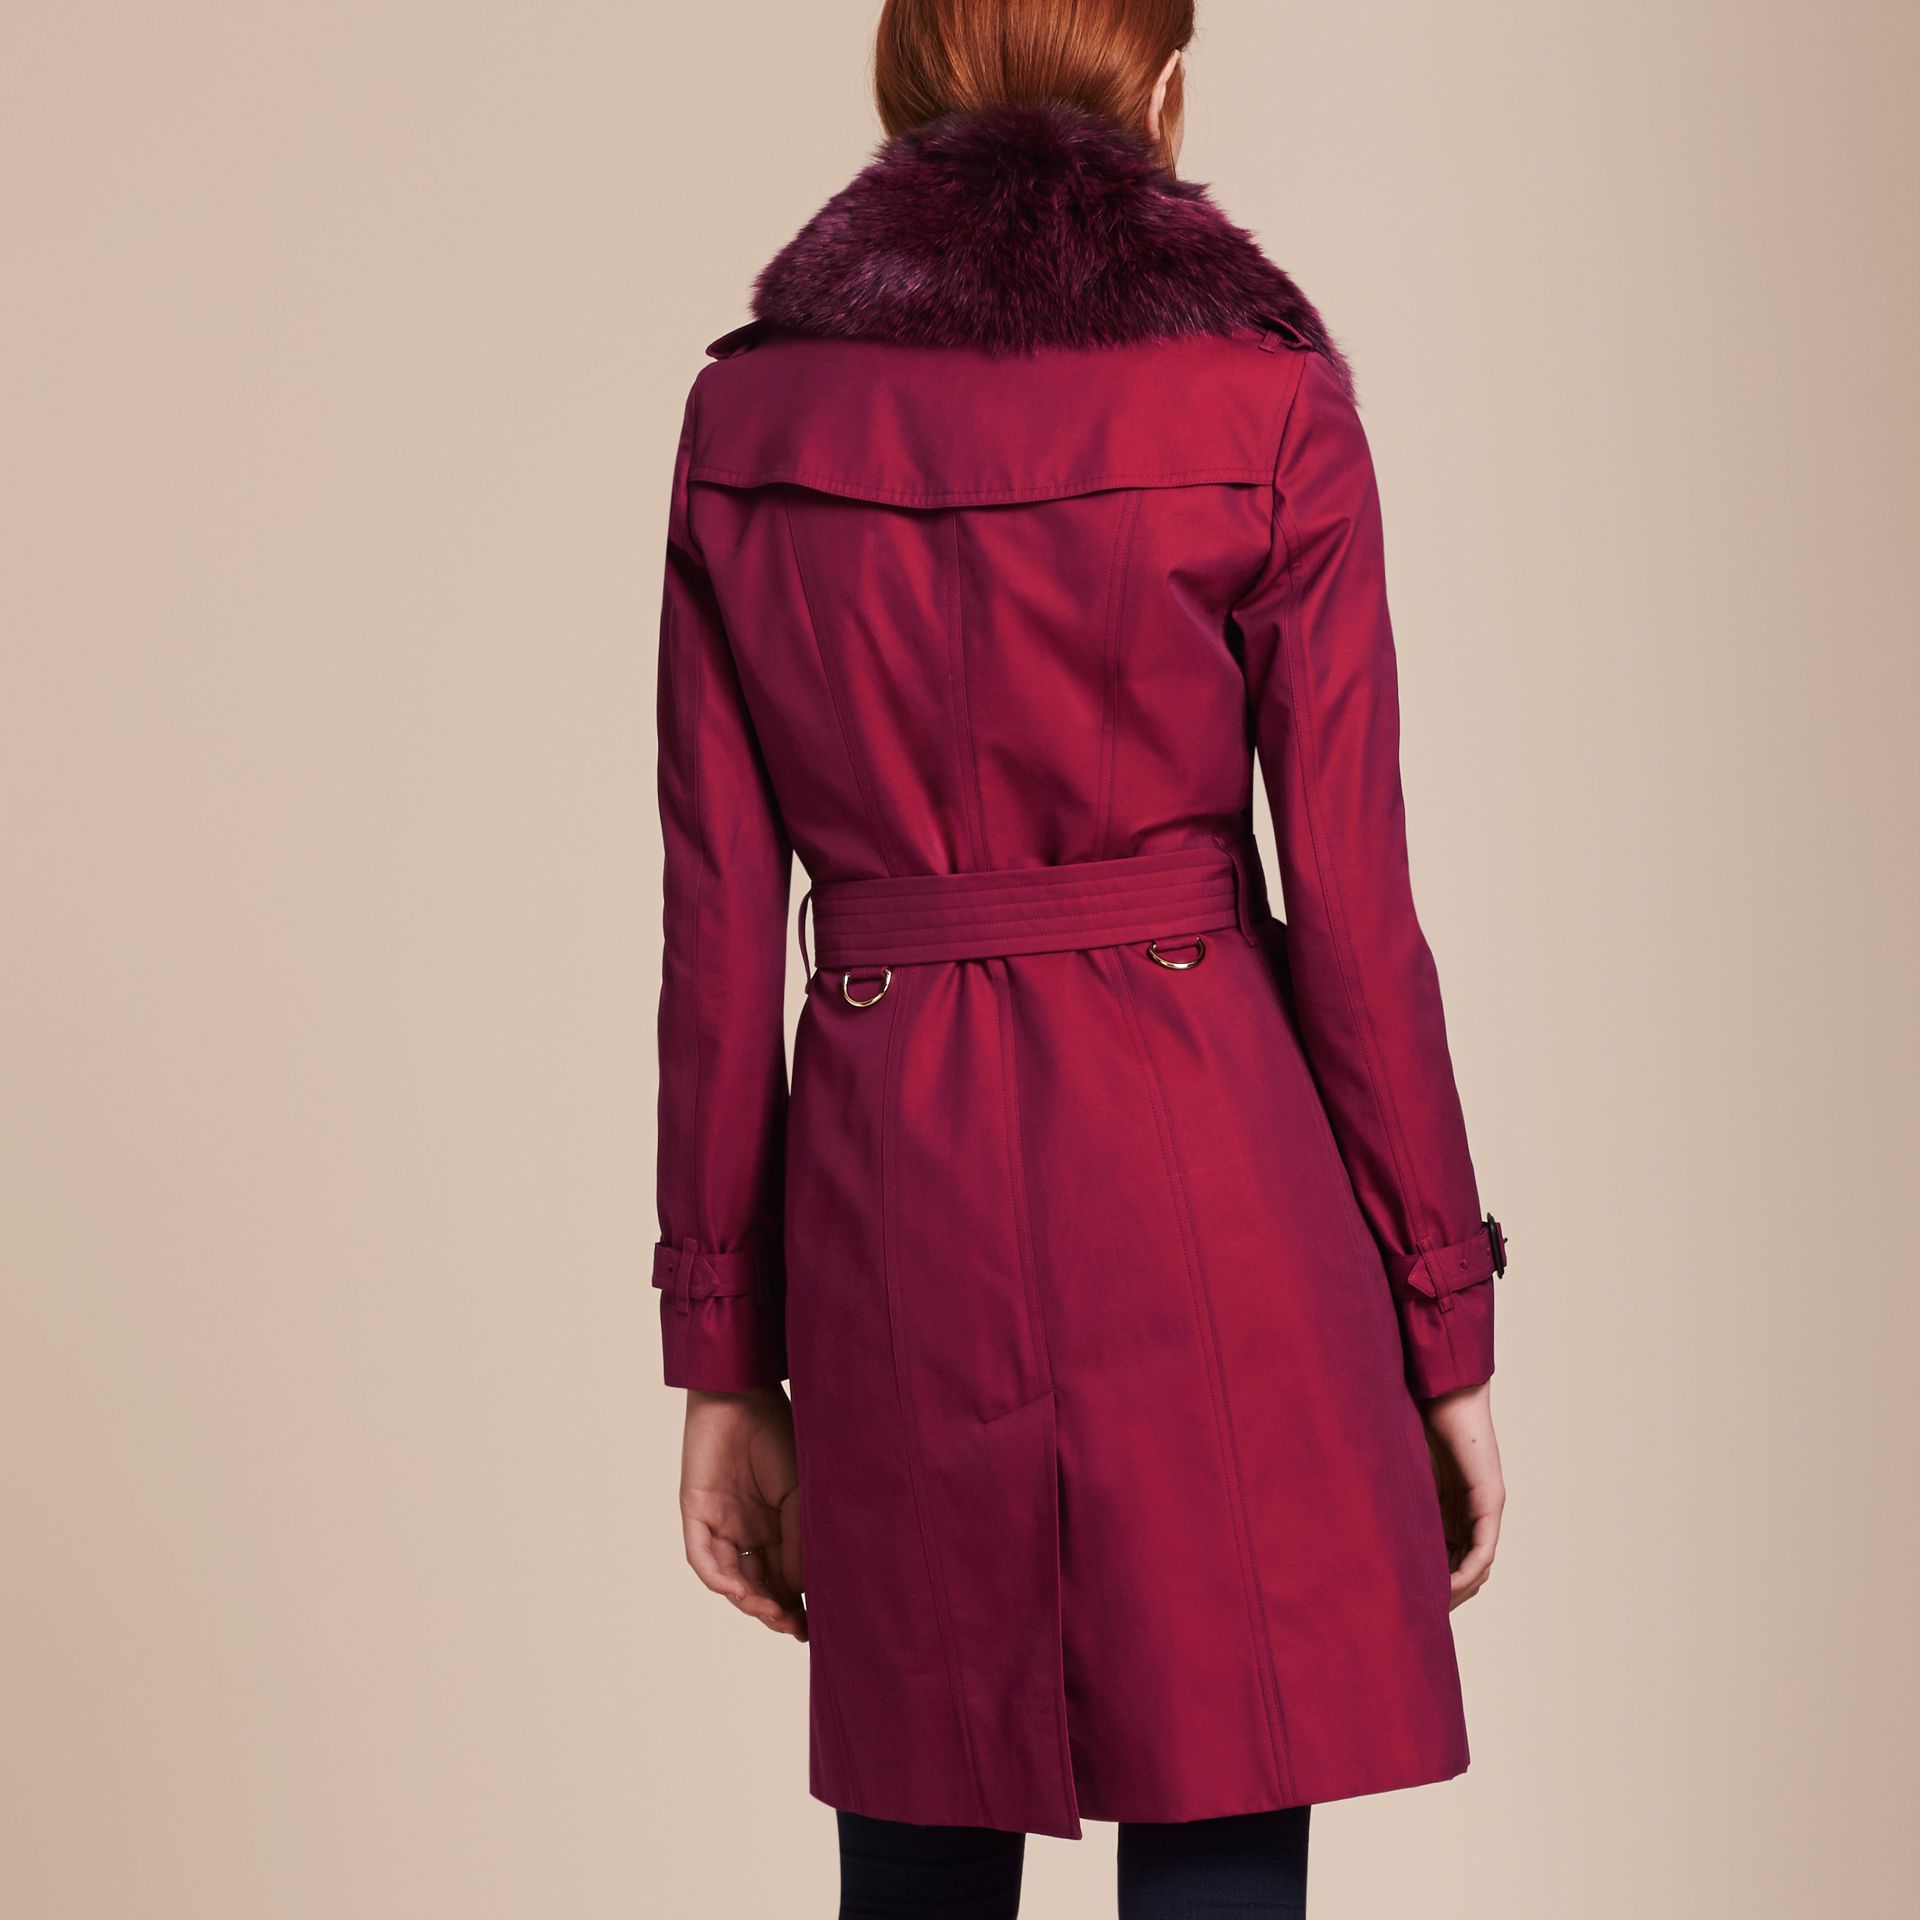 Crimson Trench-coat en gabardine de coton avec bordure en fourrure amovible Crimson - photo de la galerie 3